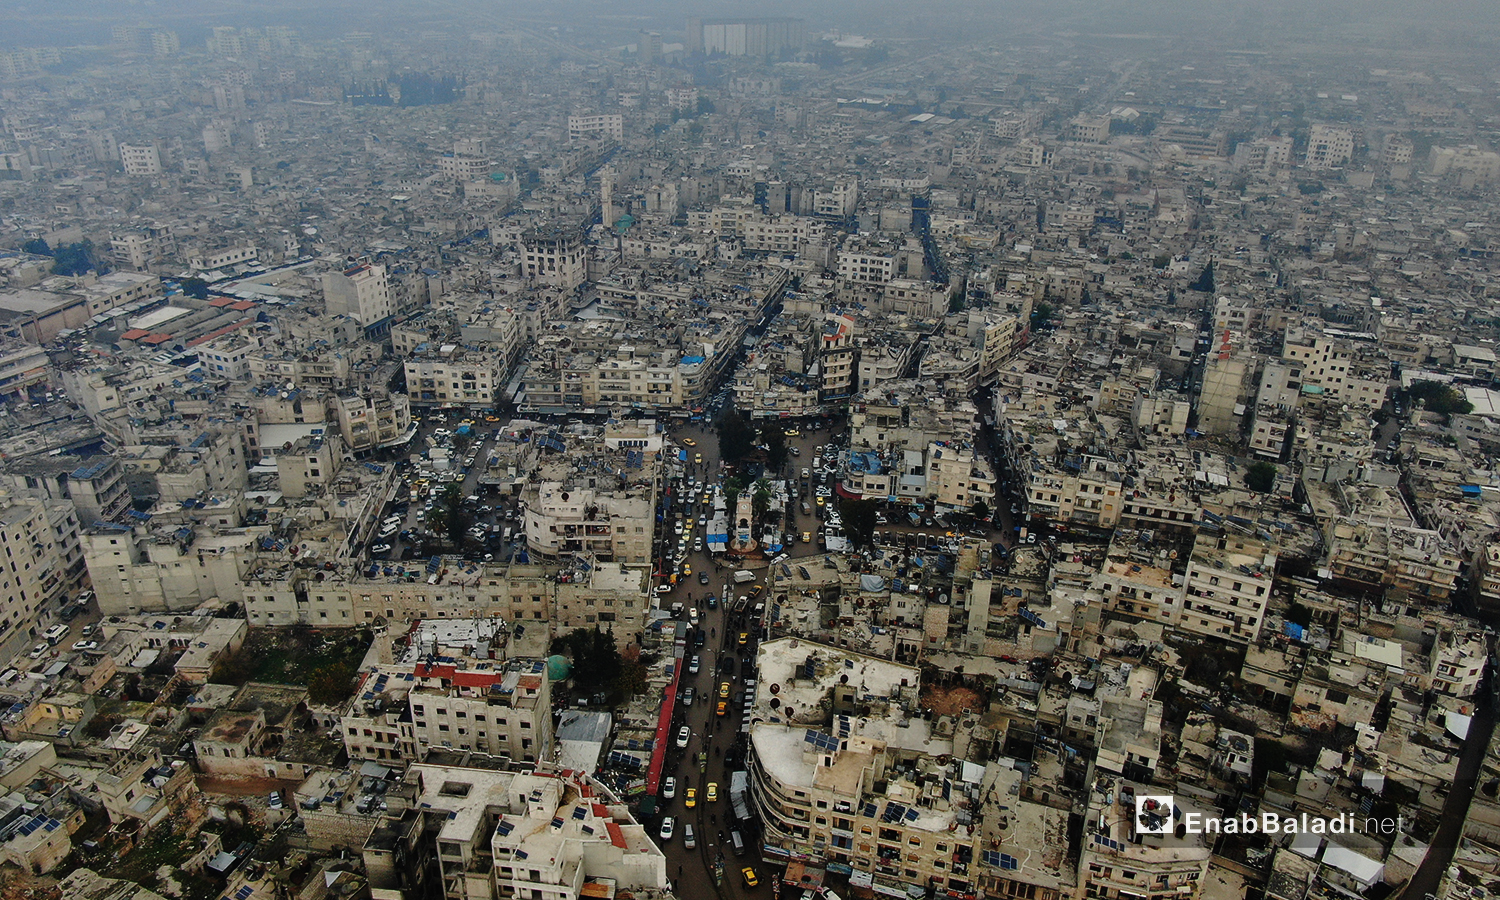 An aerial image of Idlib city